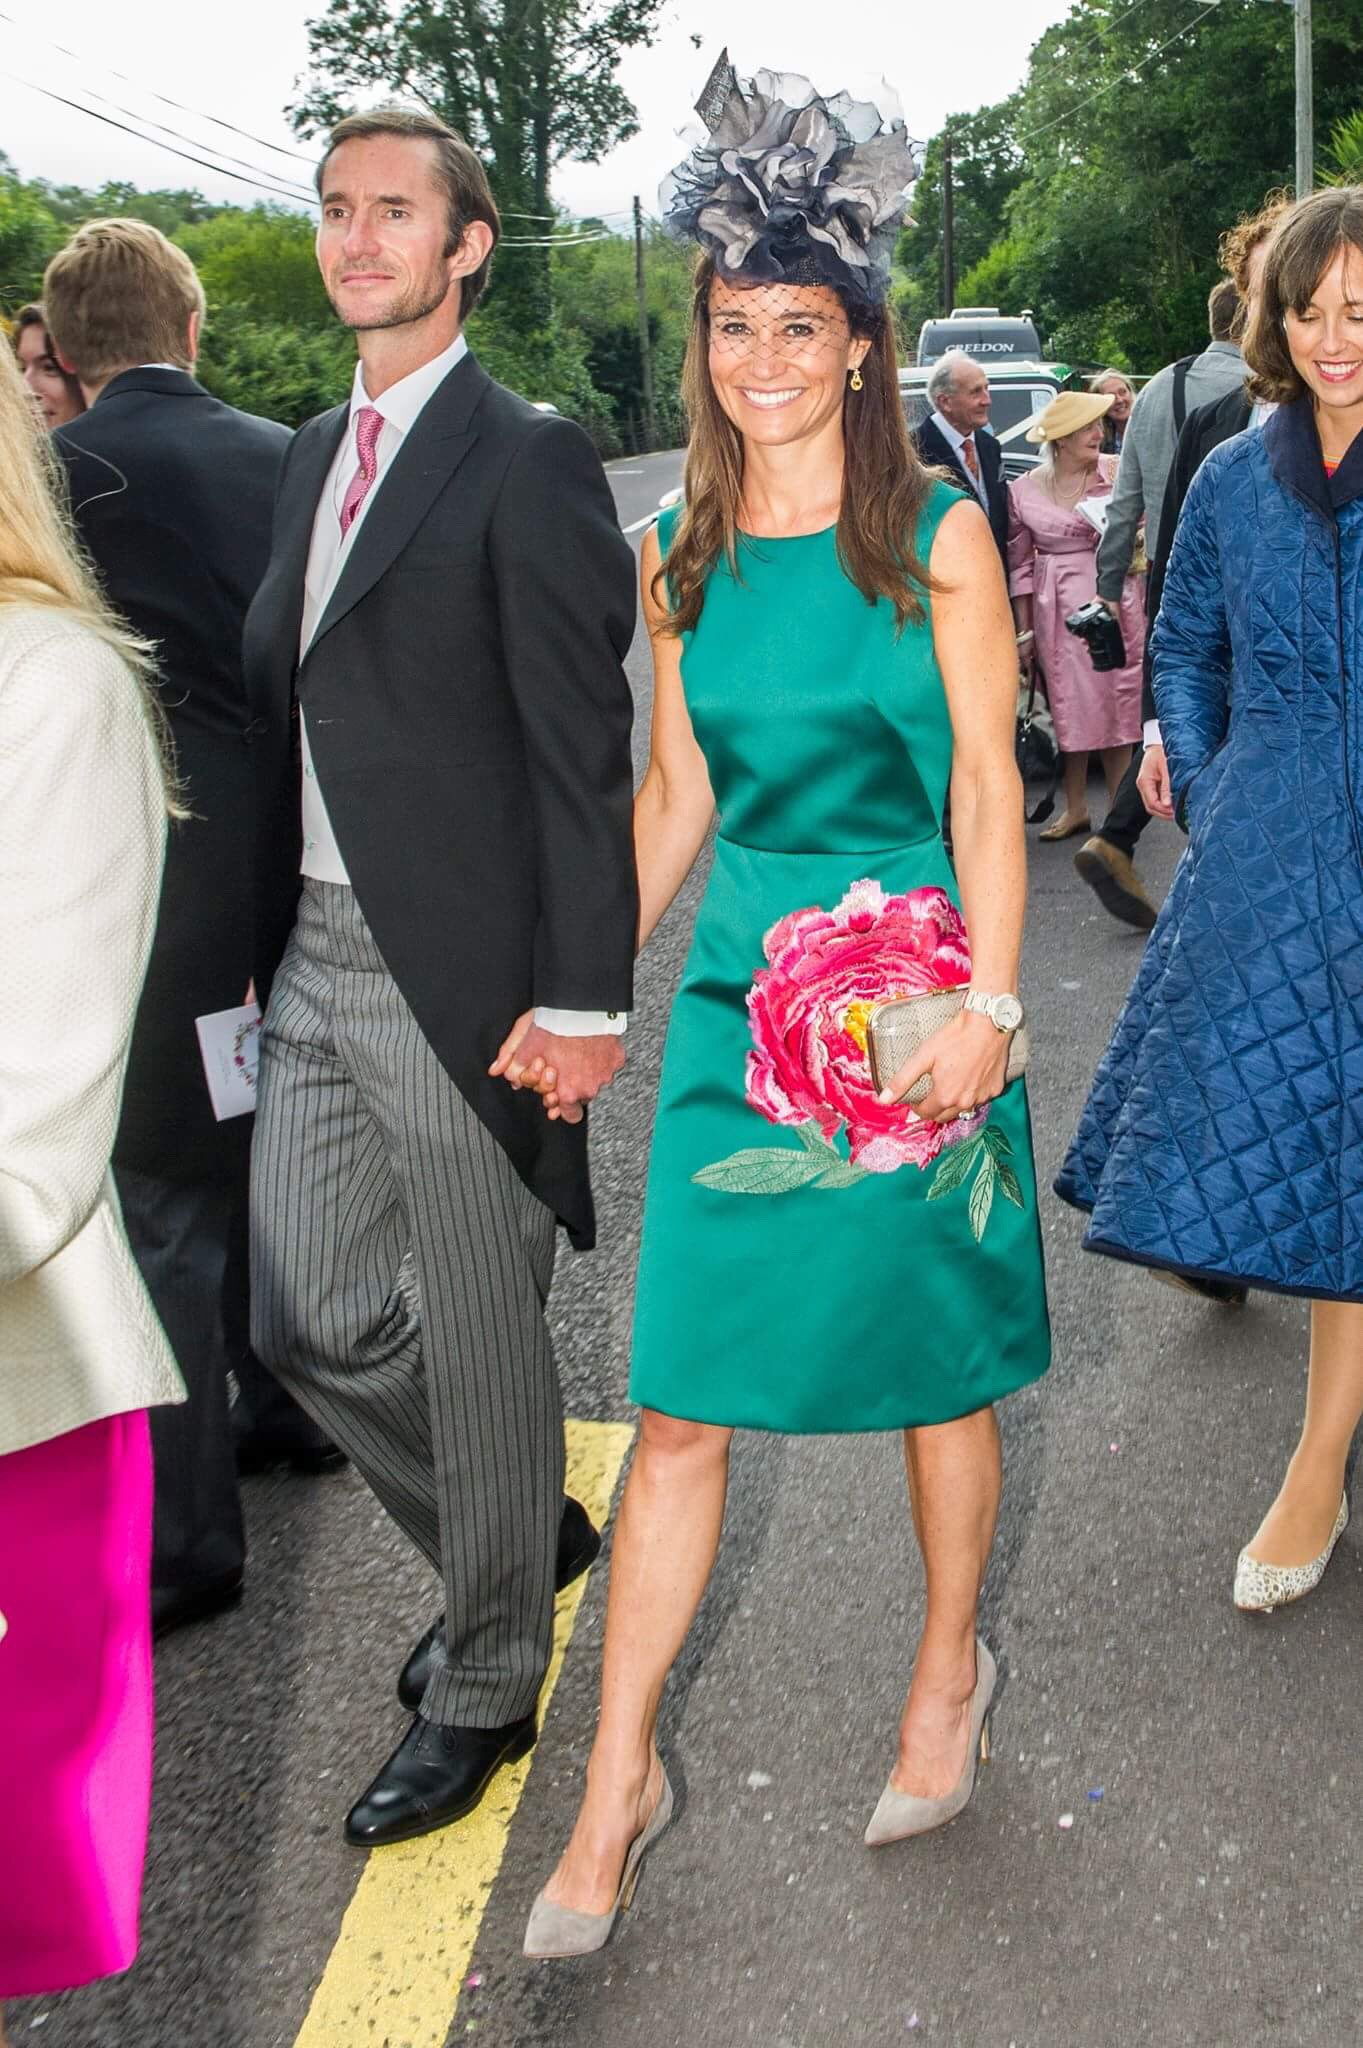 pippamiddleton & her new husband #jamesmatthews in #glengarriff for ...